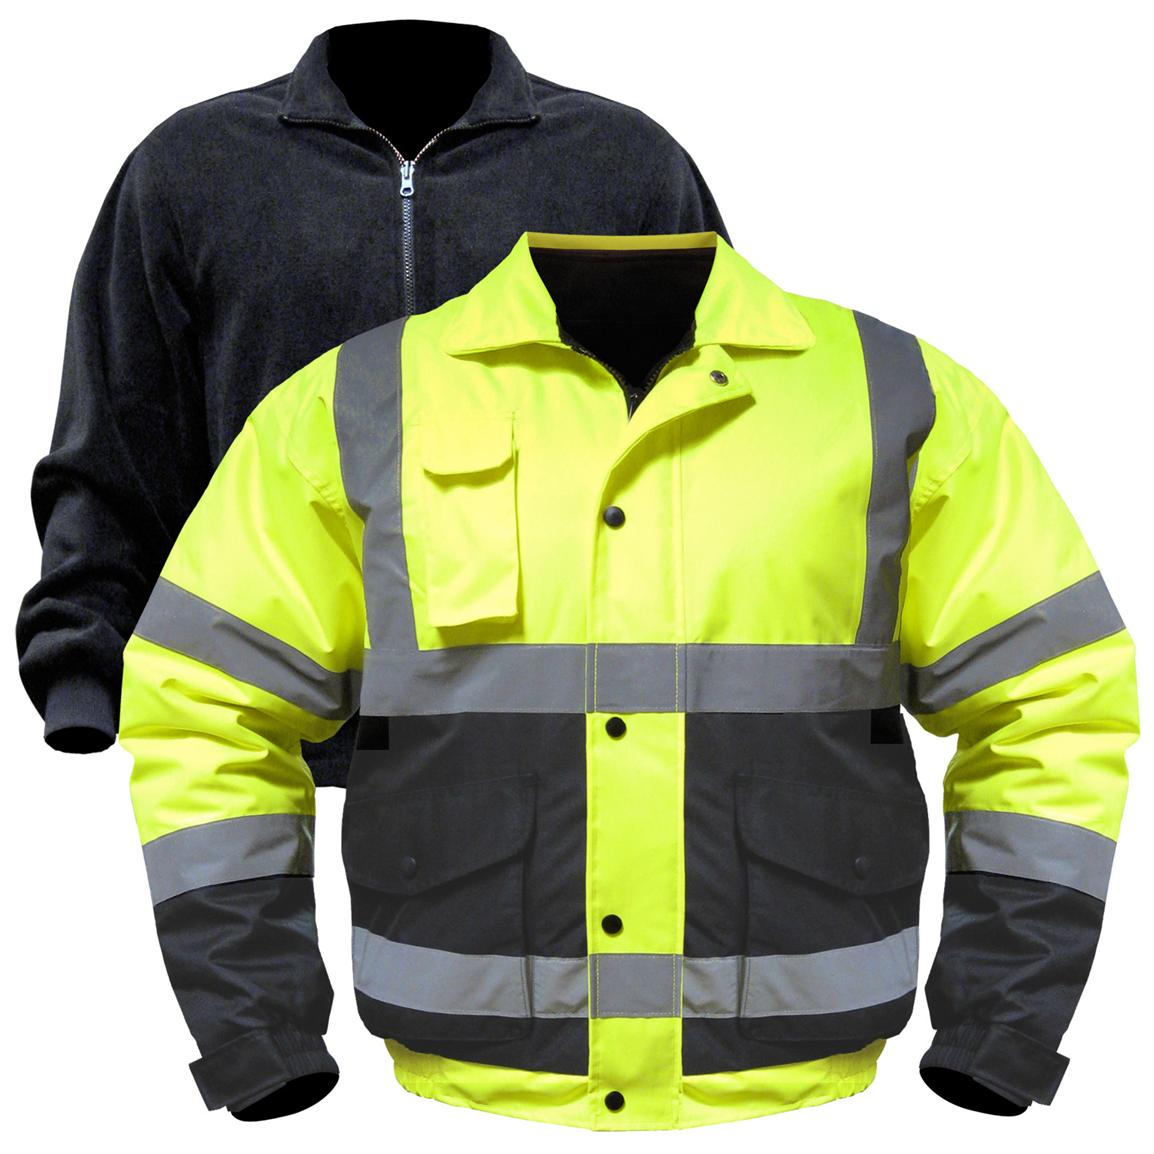 Utility Pro Wear Hi Vis Bomber Jacket with Zip-out Liner, Hi Vis Yellow